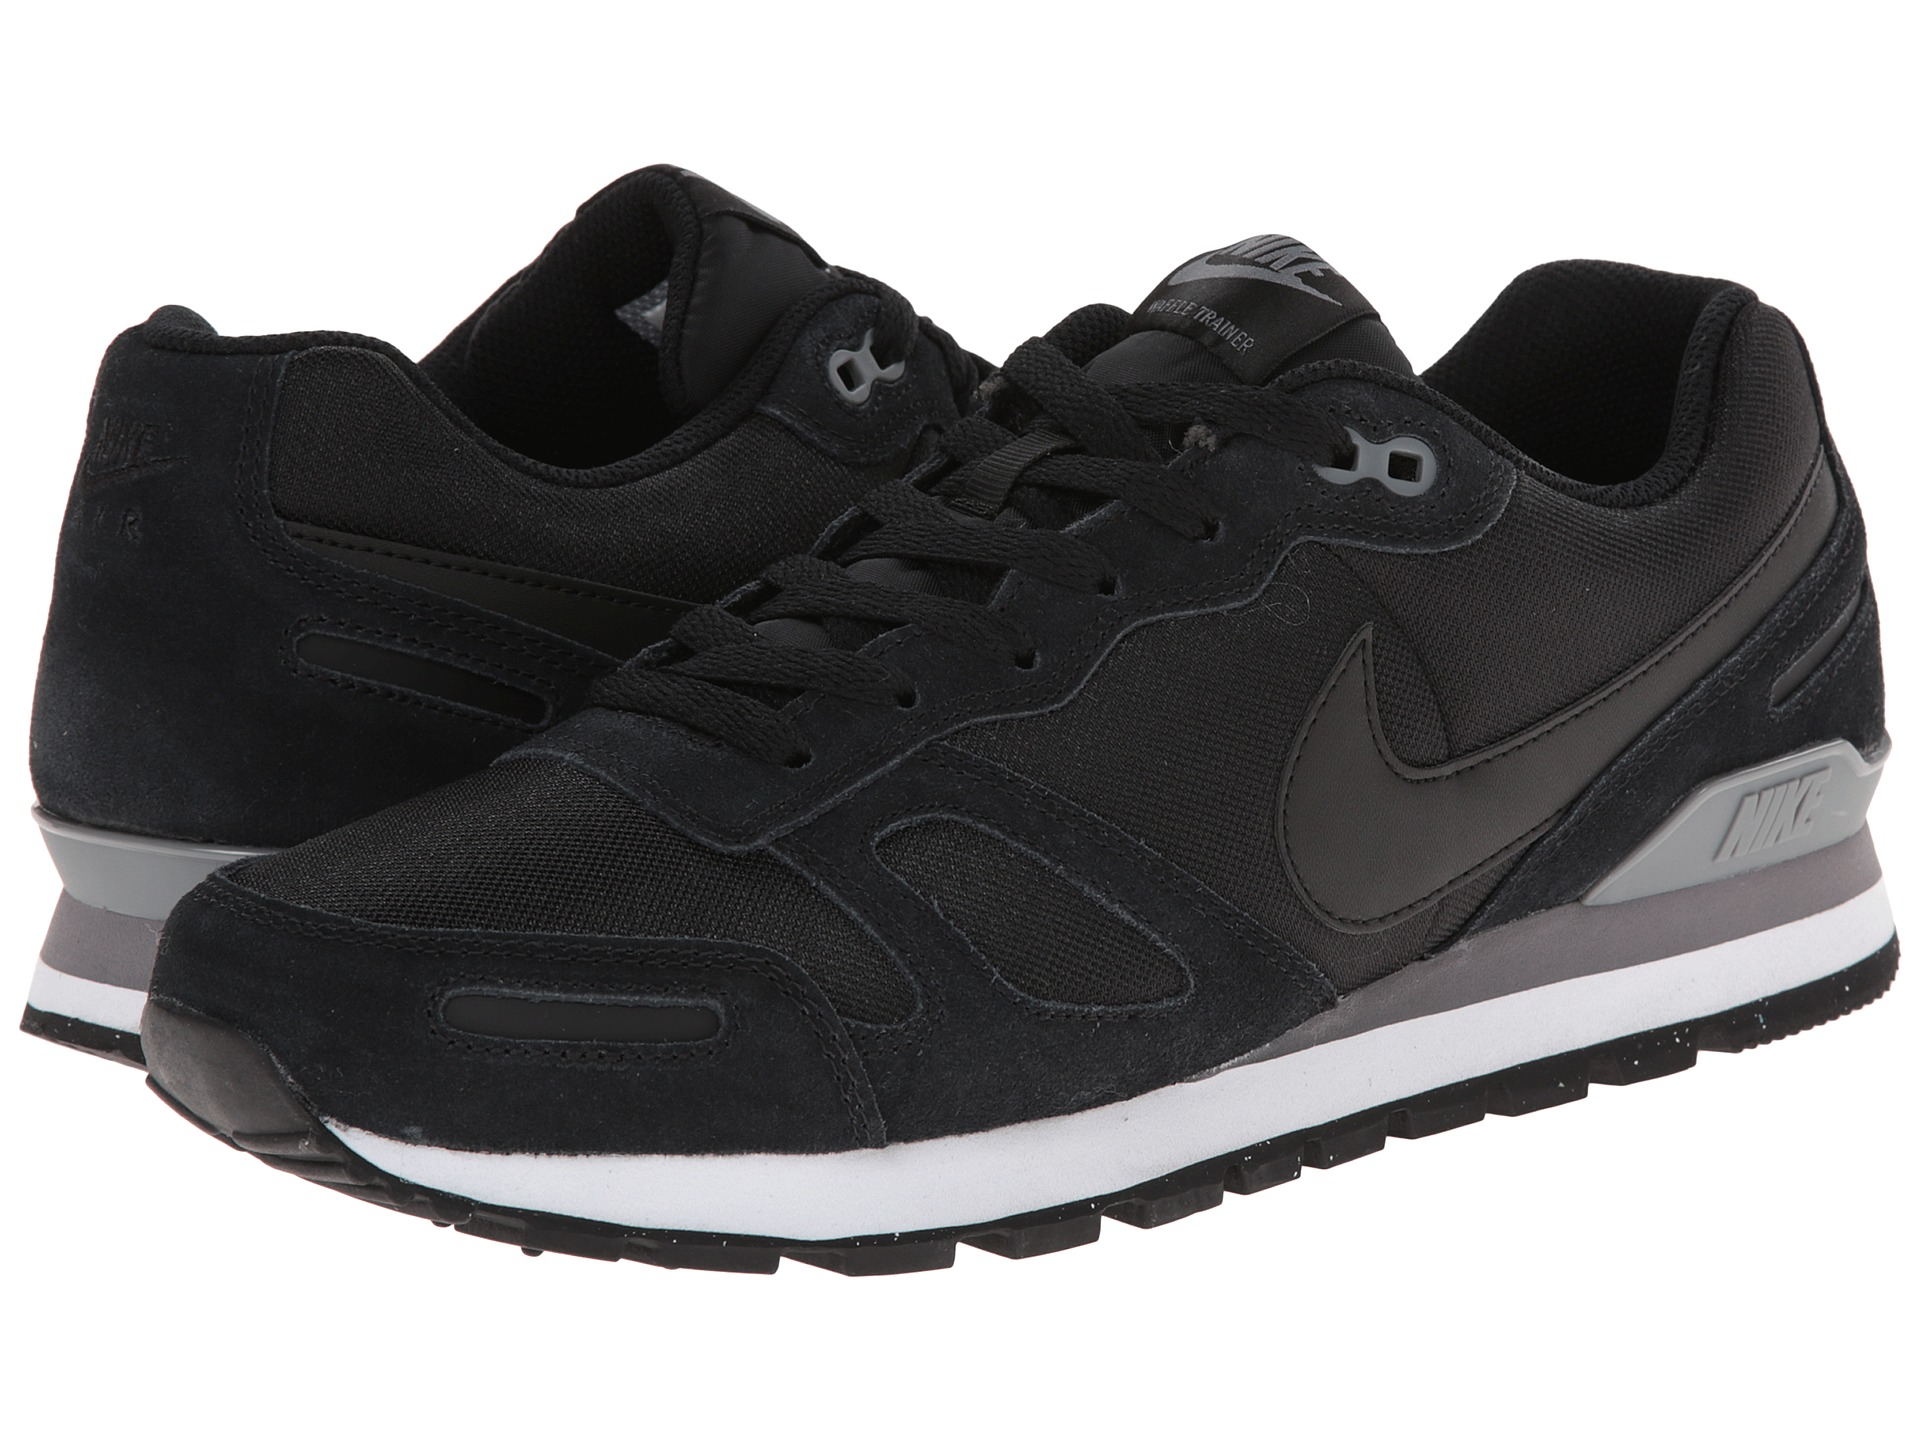 nike air waffle trainer shoes shipped free at zappos. Black Bedroom Furniture Sets. Home Design Ideas